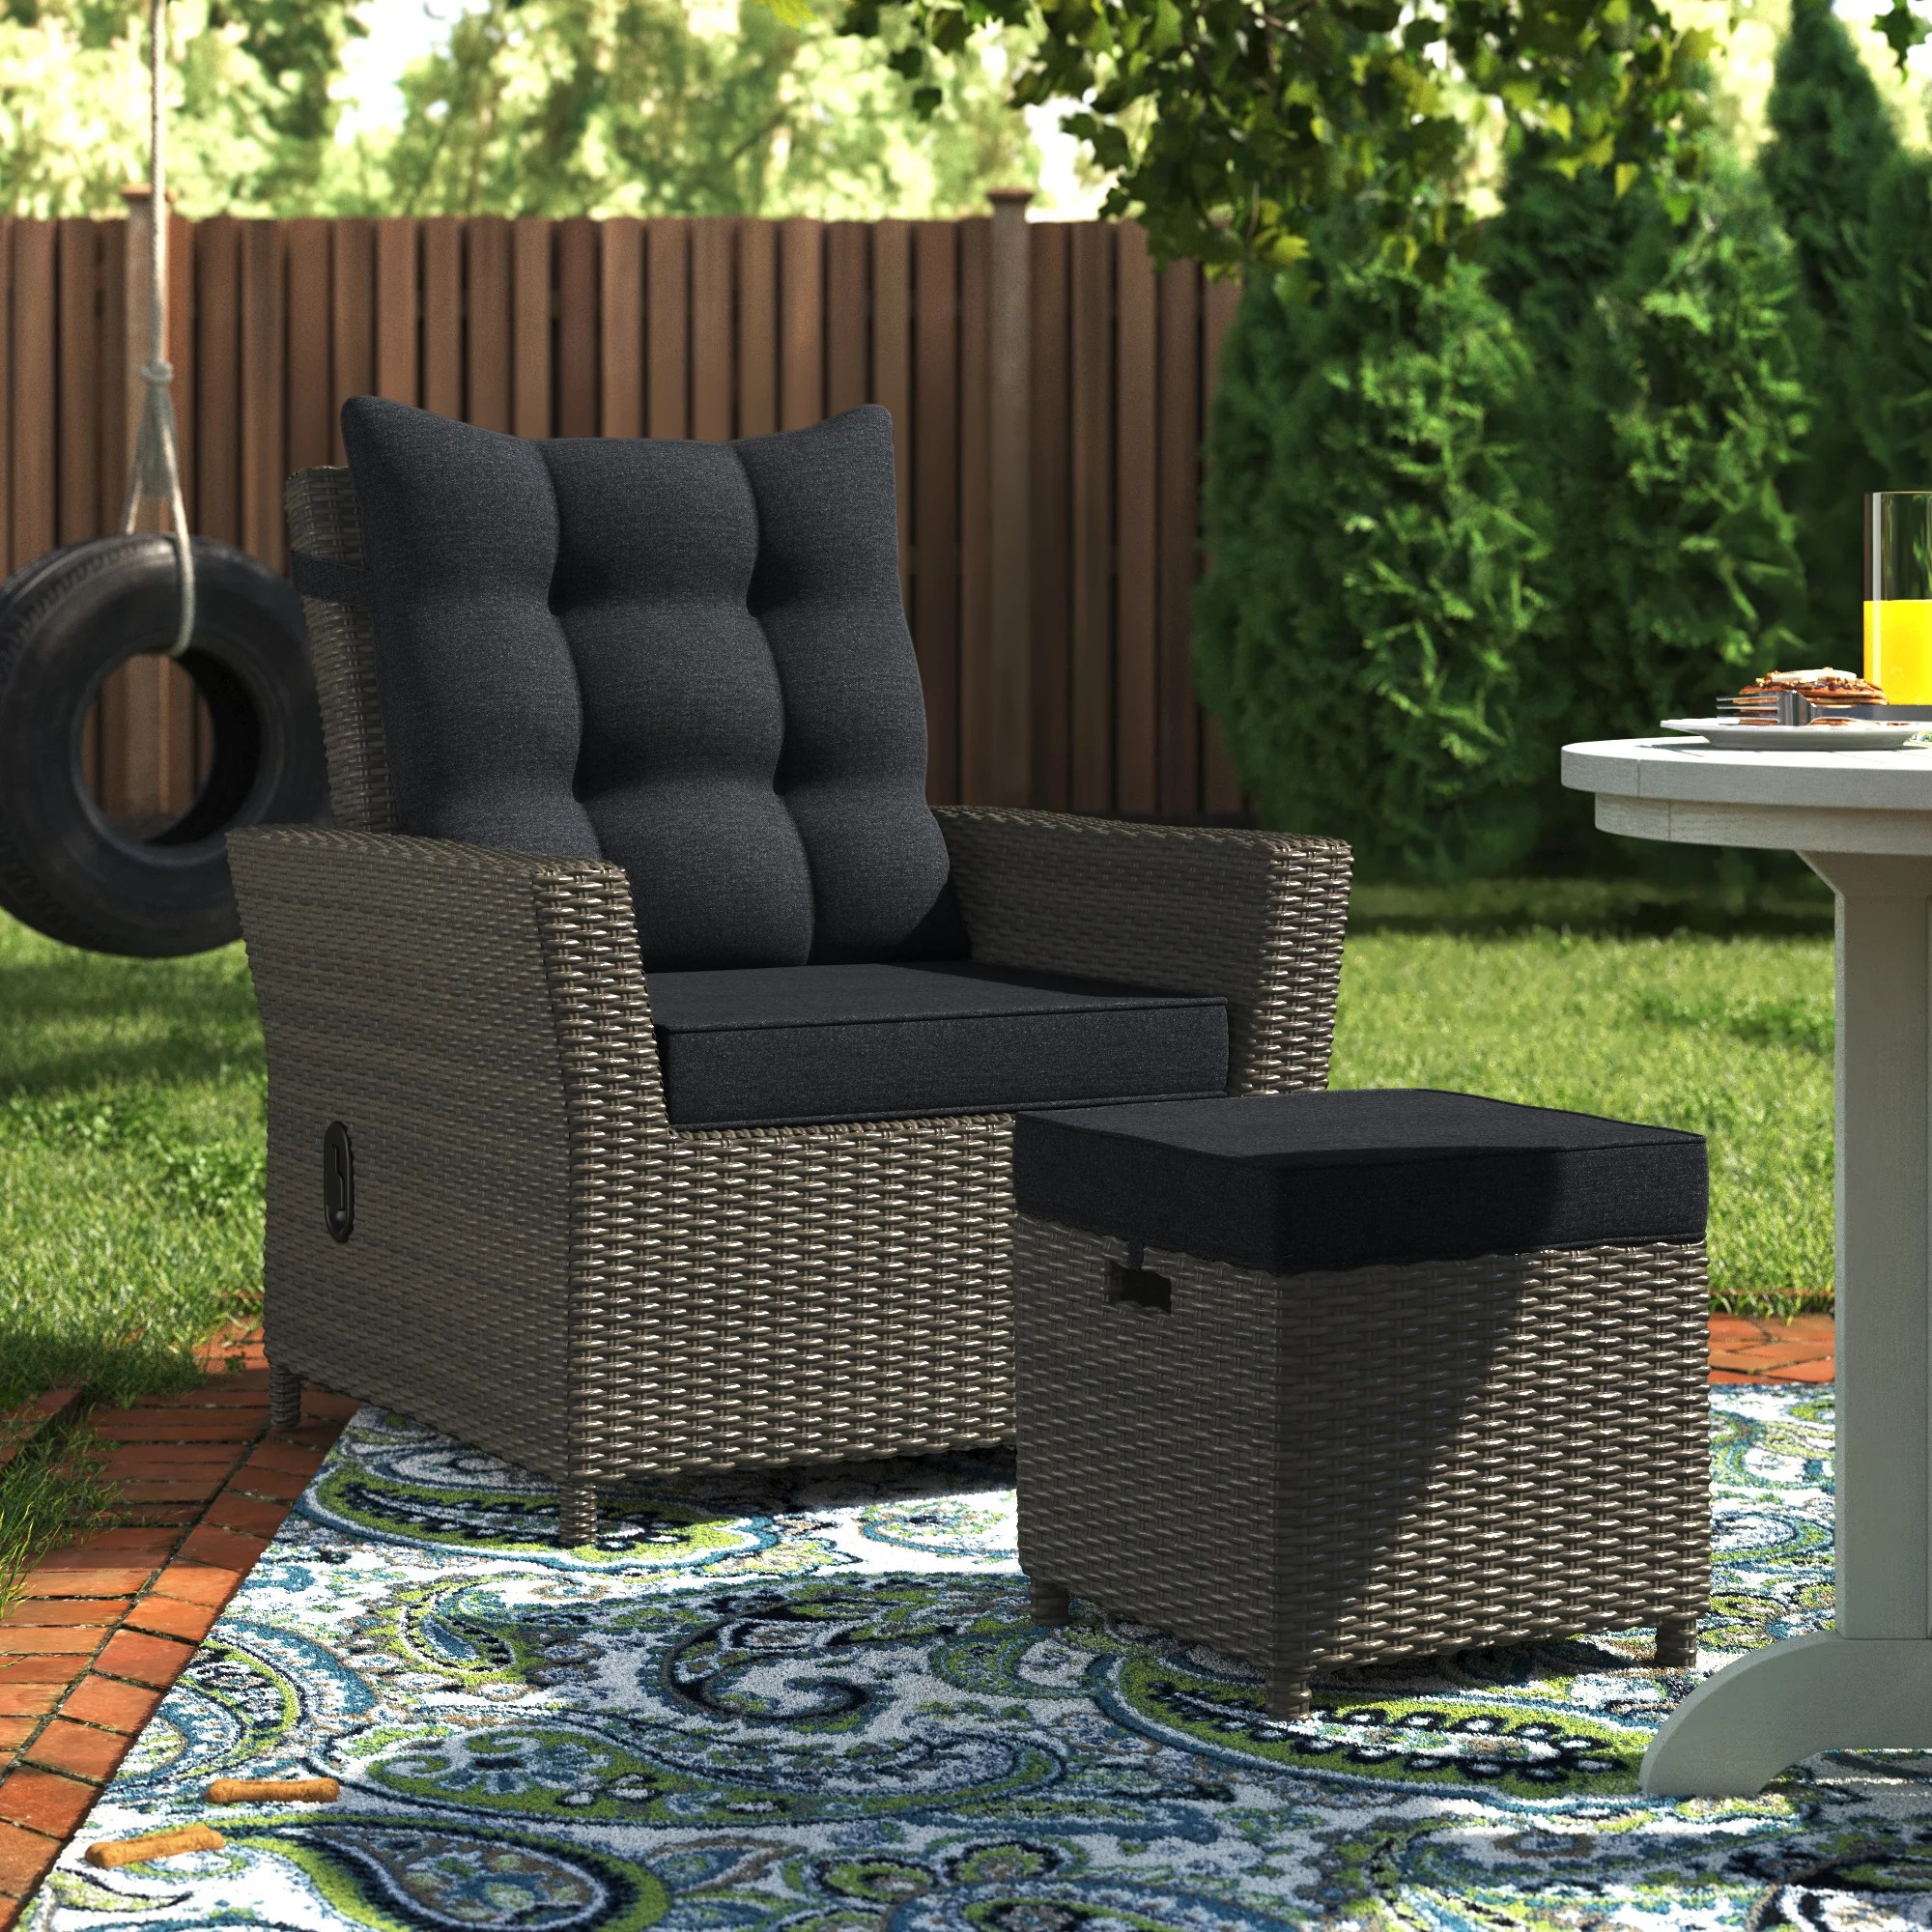 acree recliner patio chair with cushions and ottoman